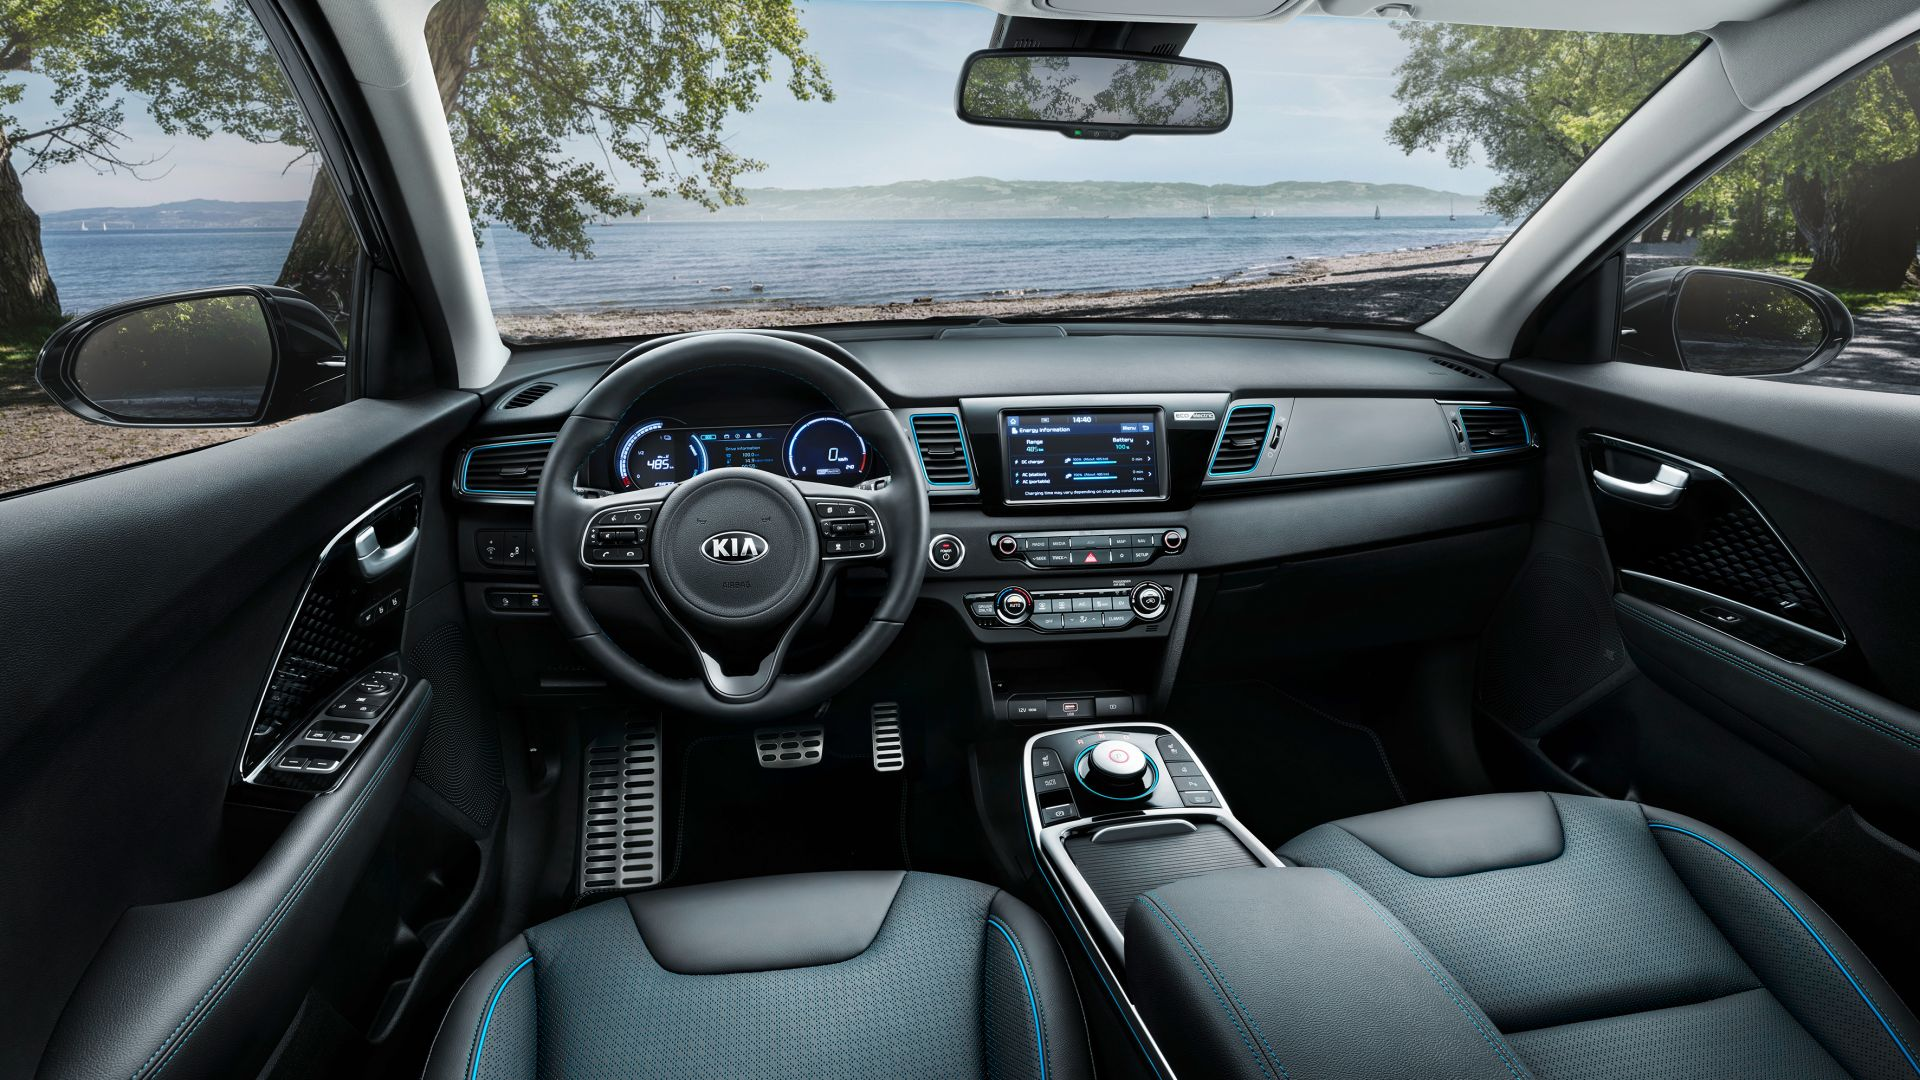 Kia e-Niro, electric cars, 4K (horizontal)